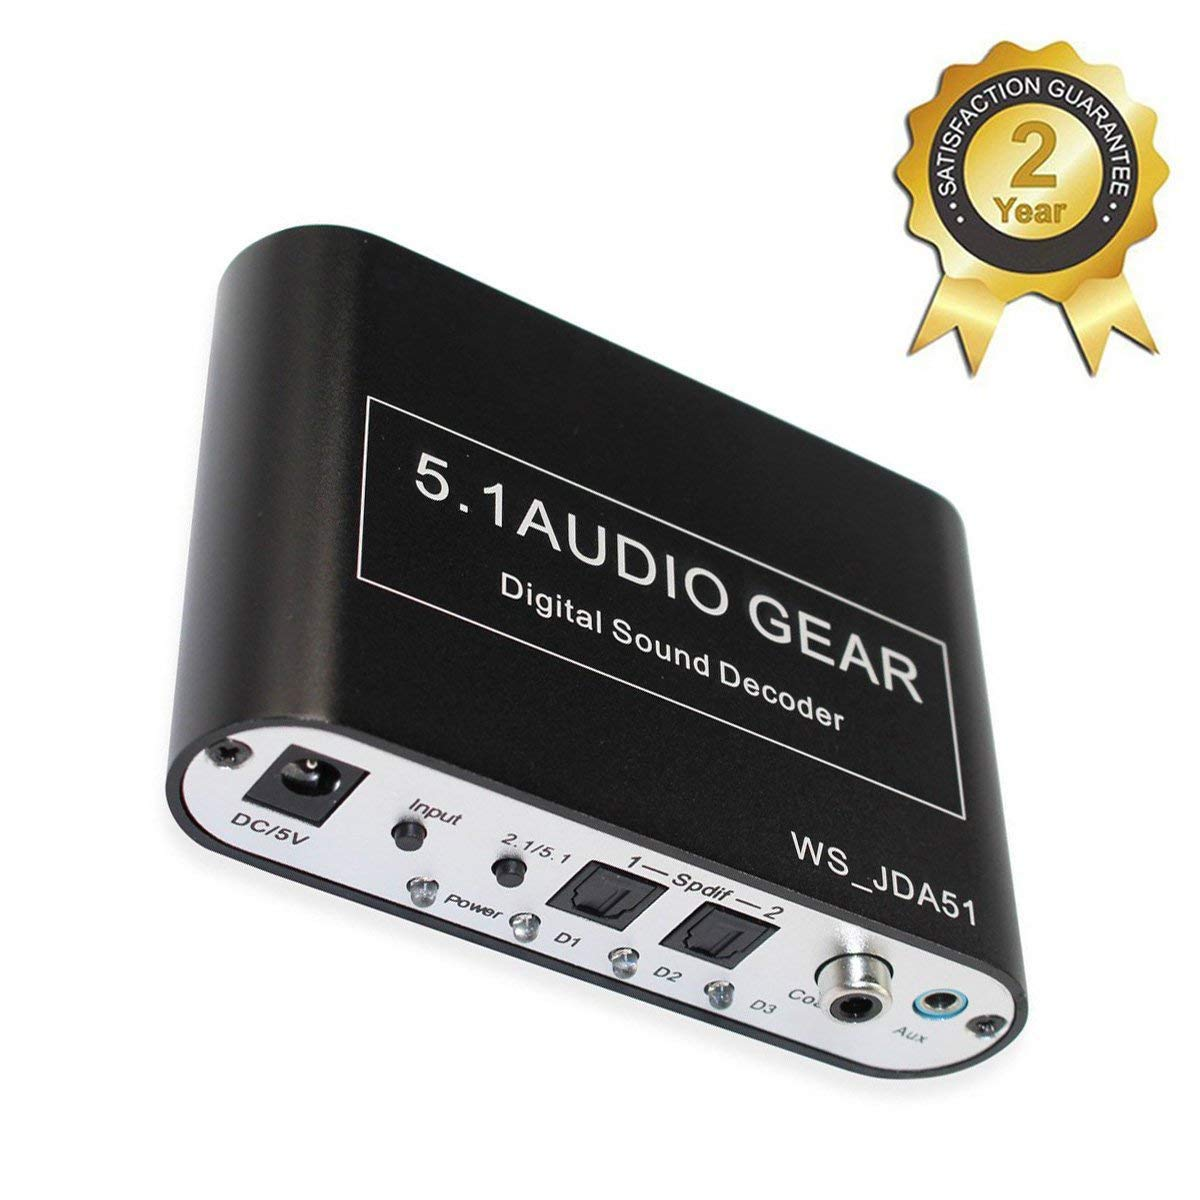 5.1 Audio Gear Digital Sound Decoder Converter - Optical SPDIF/Coaxial AC3/DTS To 5.1Analog output - support DTS/AC-3/PCM for HD player Blu-ray DVD PS3 PS4 and Xbox 360 Xbox one